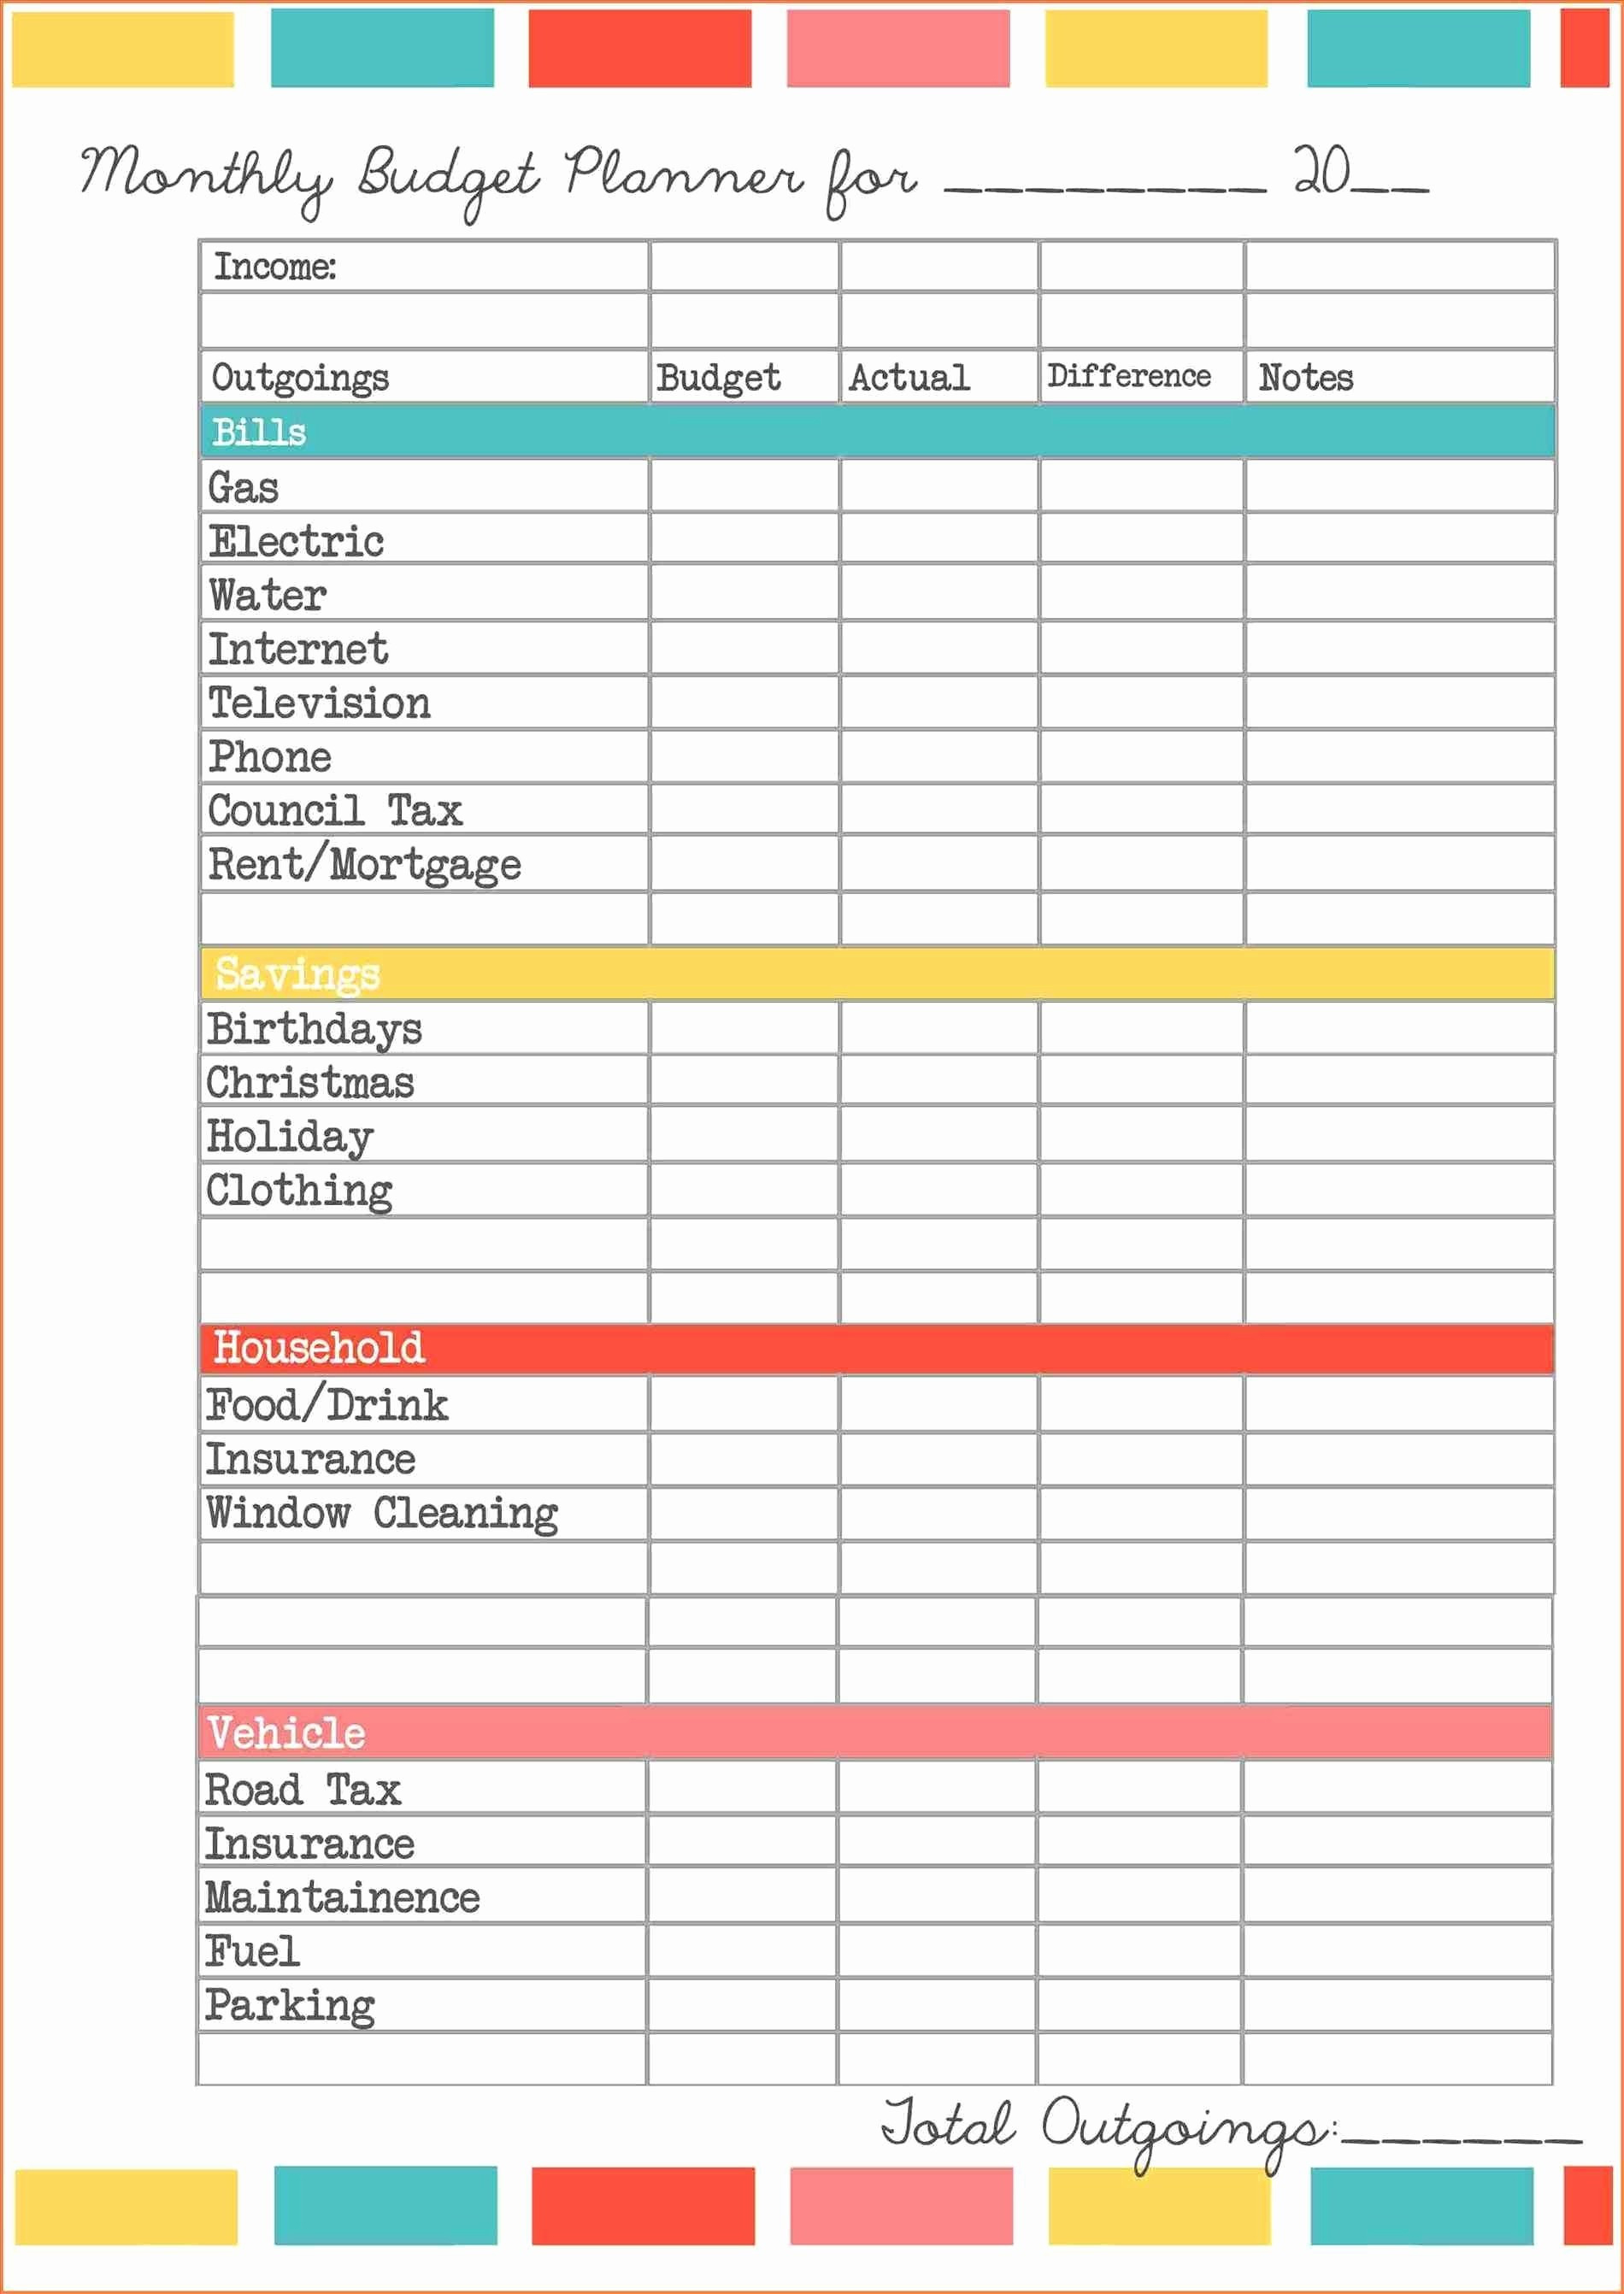 Accounts Spreadsheet Template Uk With Small Business Accounting Spreadsheet Invoice Template Uk Free